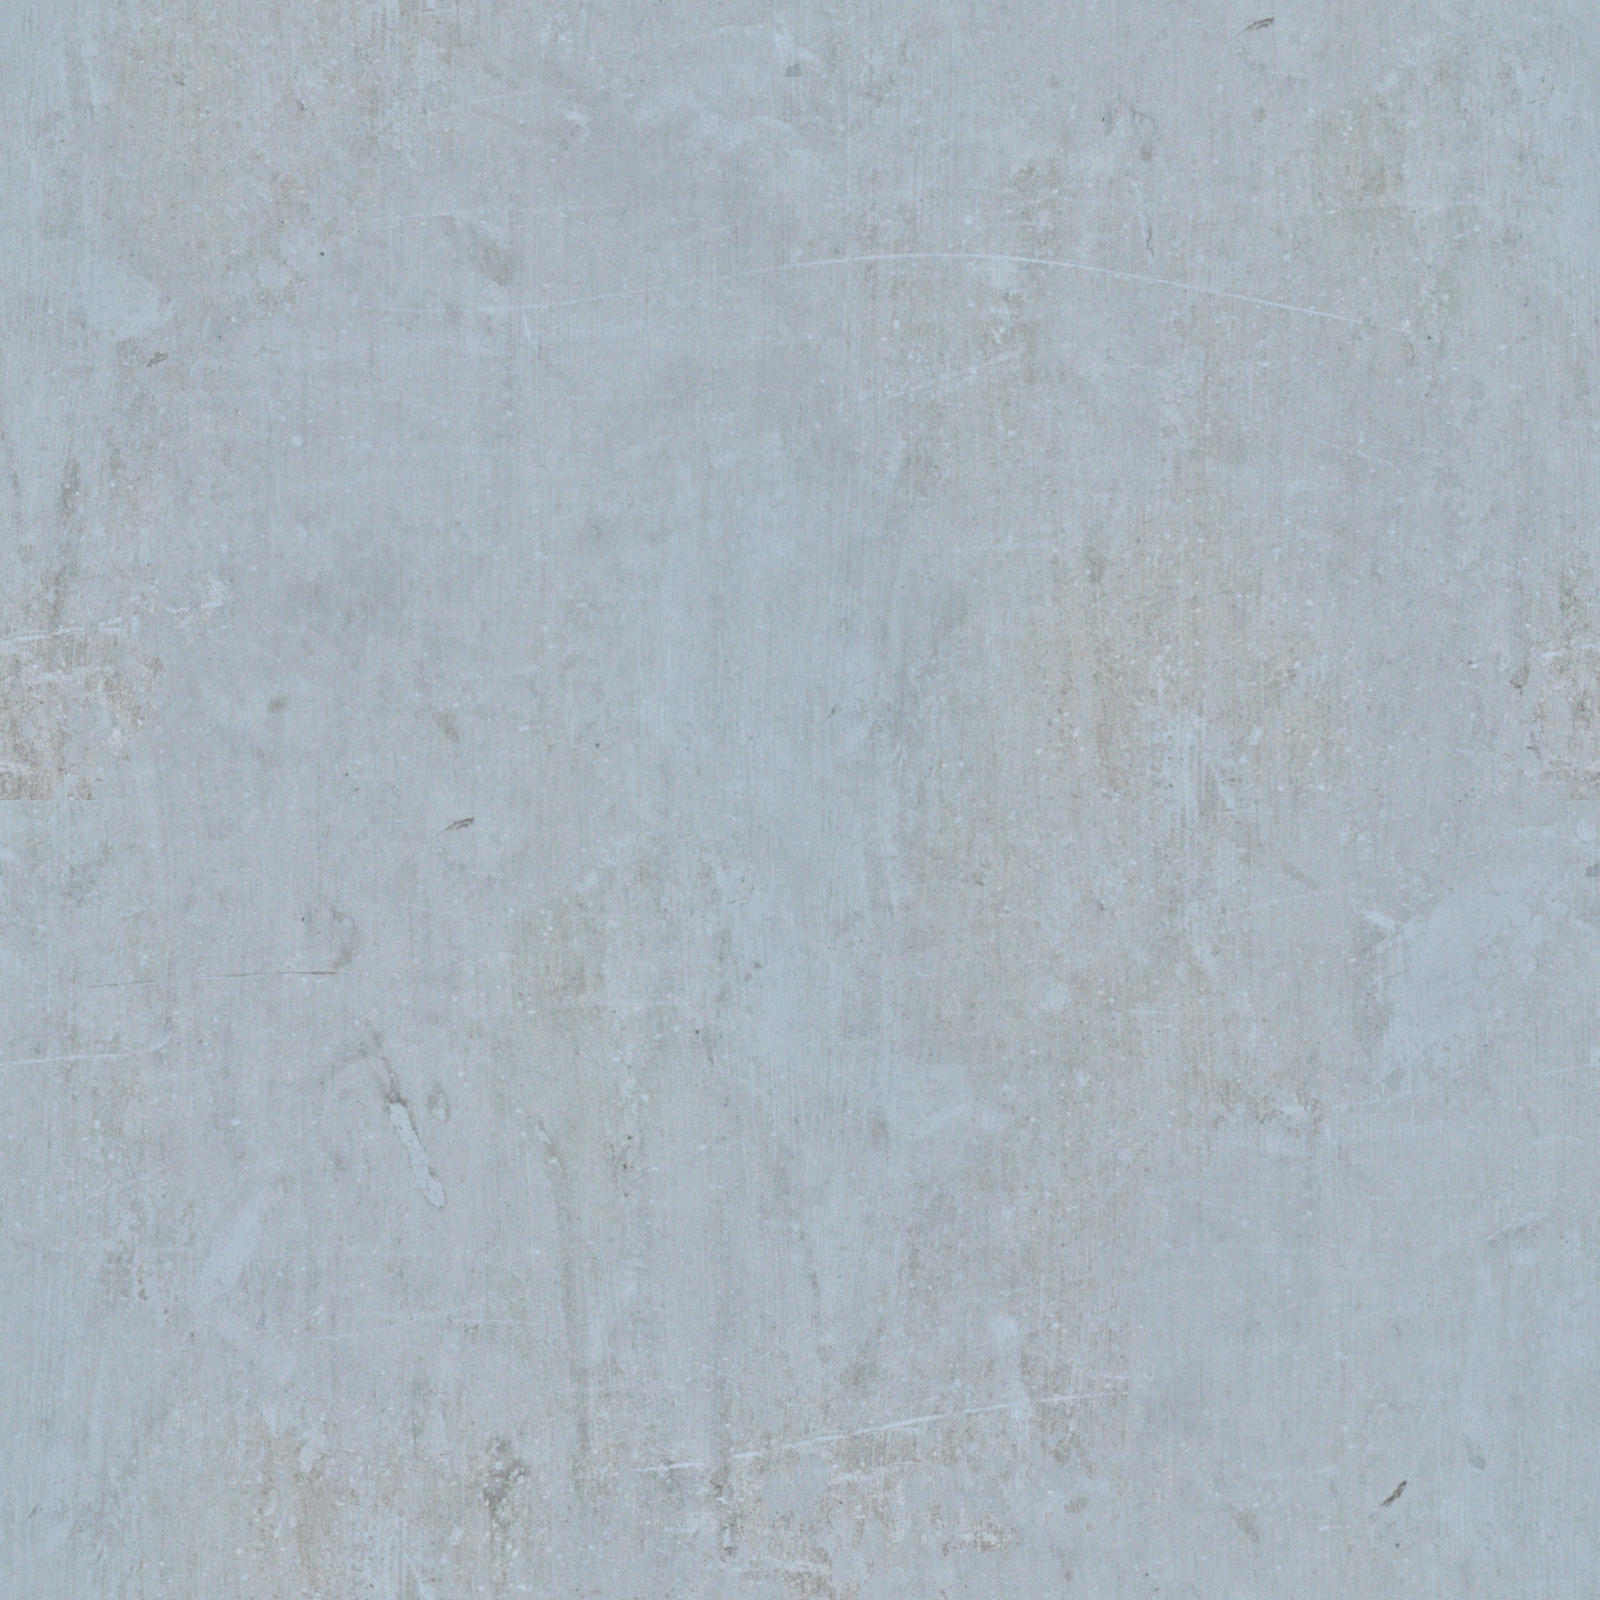 Concrete wall smooth dirty seamless texture 2048x2 by for Smooth concrete texture